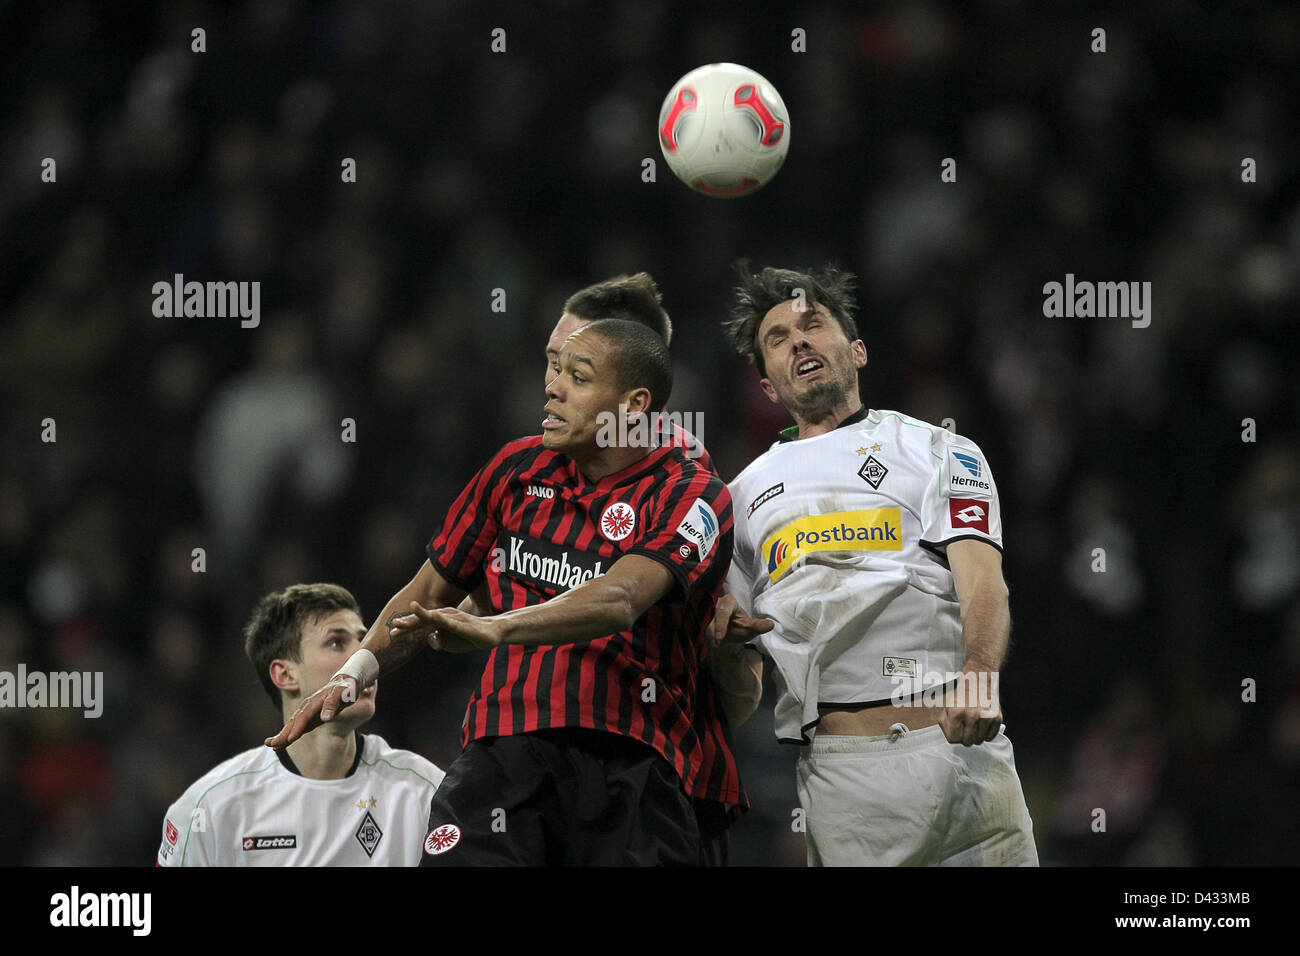 Frankfurt's Anderson (C) vies for the ball with Moenchengladbach's Martin Stranzl (R) during the Bundesliga - Stock Image